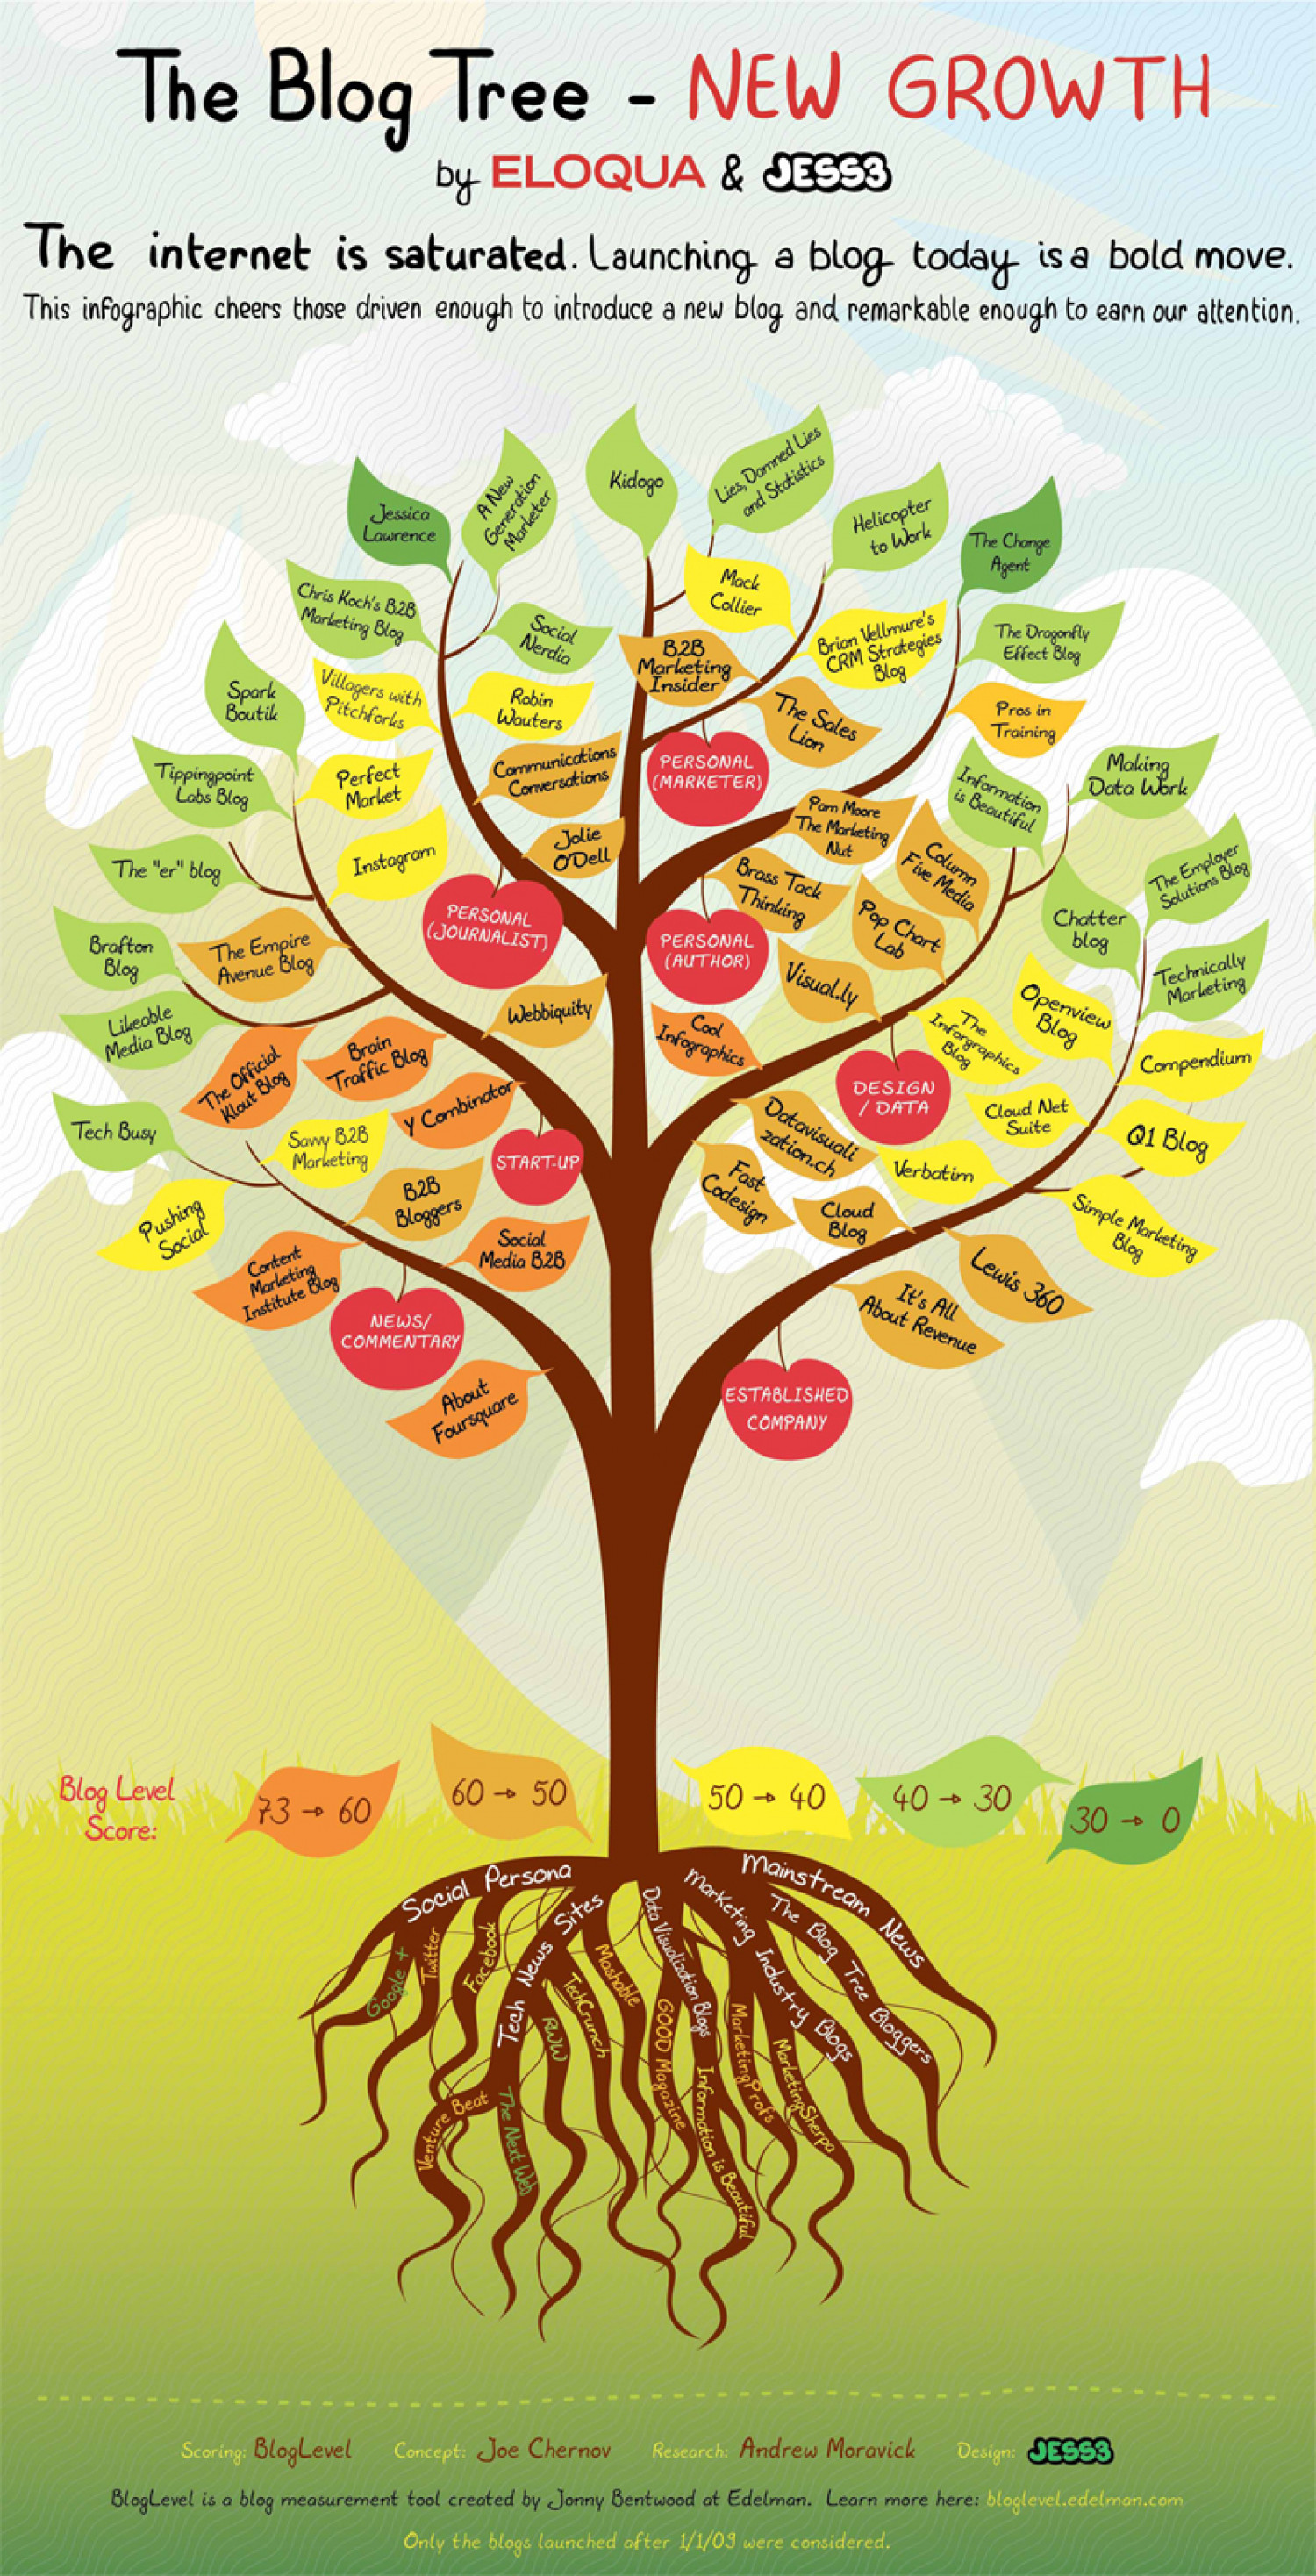 The Blog Tree: New Growth Infographic